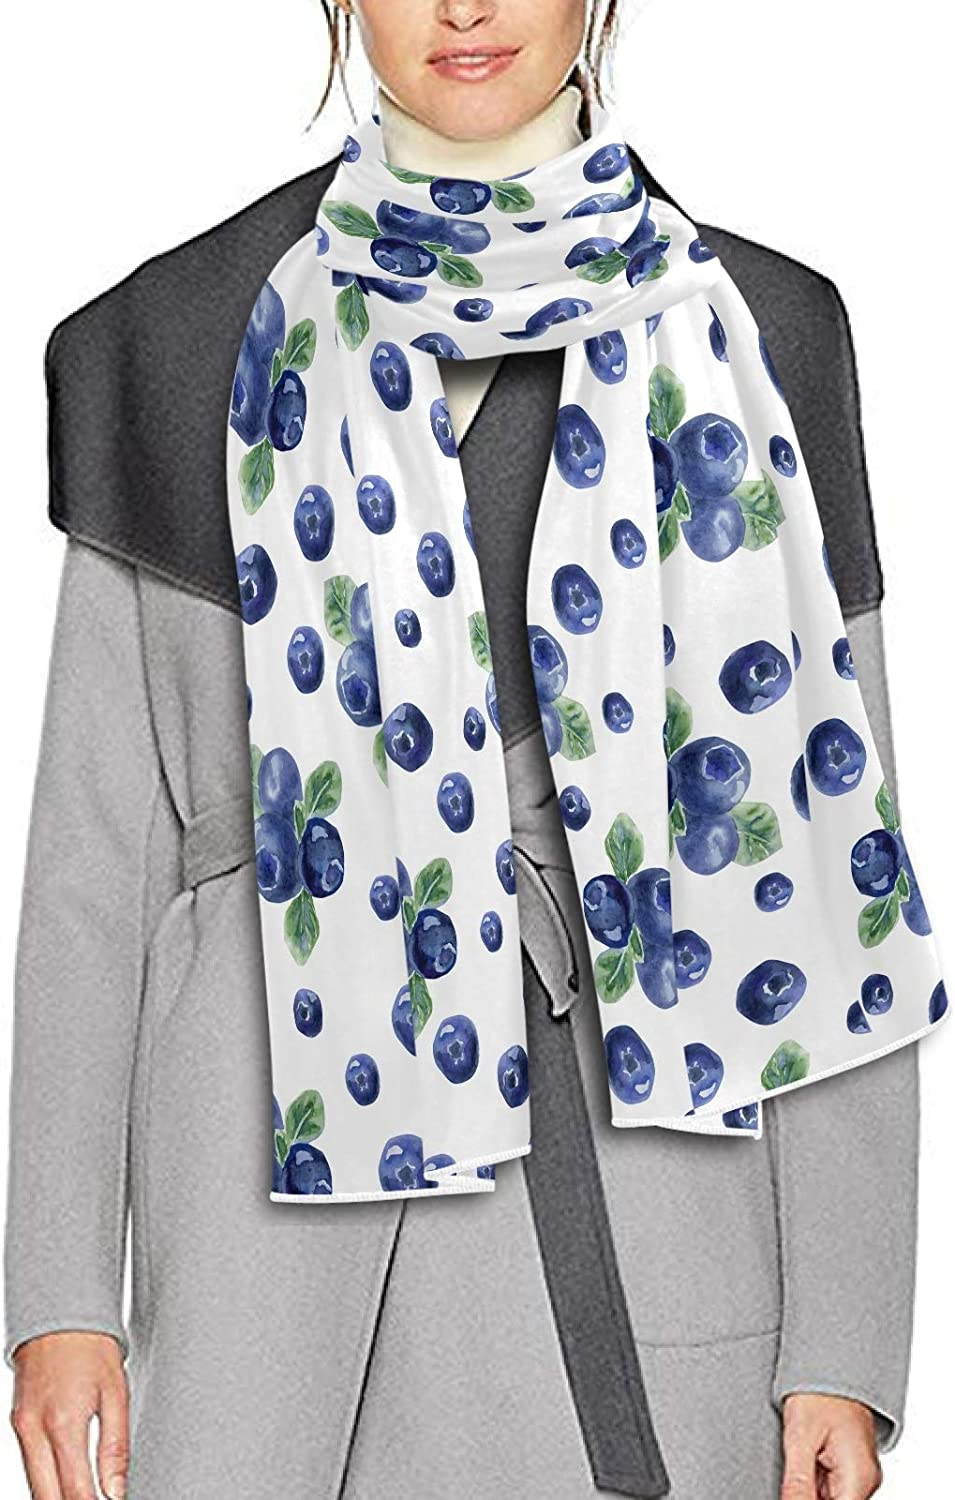 Scarf for Women and Men Fruits Blueberry Shawls Blanket Scarf wraps Soft thick Winter Oversized Scarves Lightweight